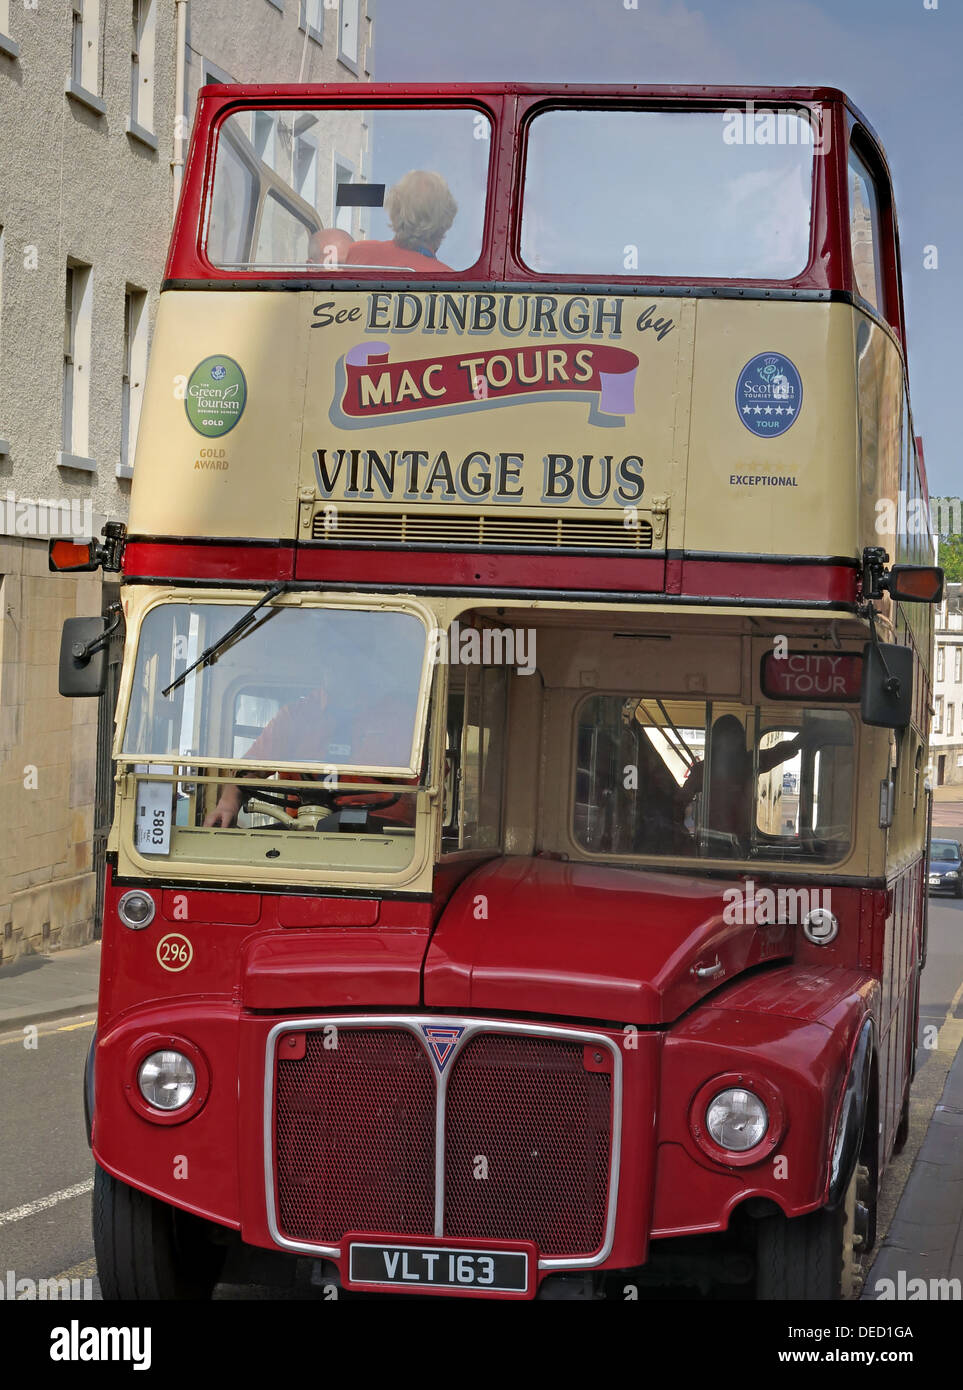 Edinburgh vintage routemaster tour bus Royal mile High st Edinburgh Scotland UK - Stock Image